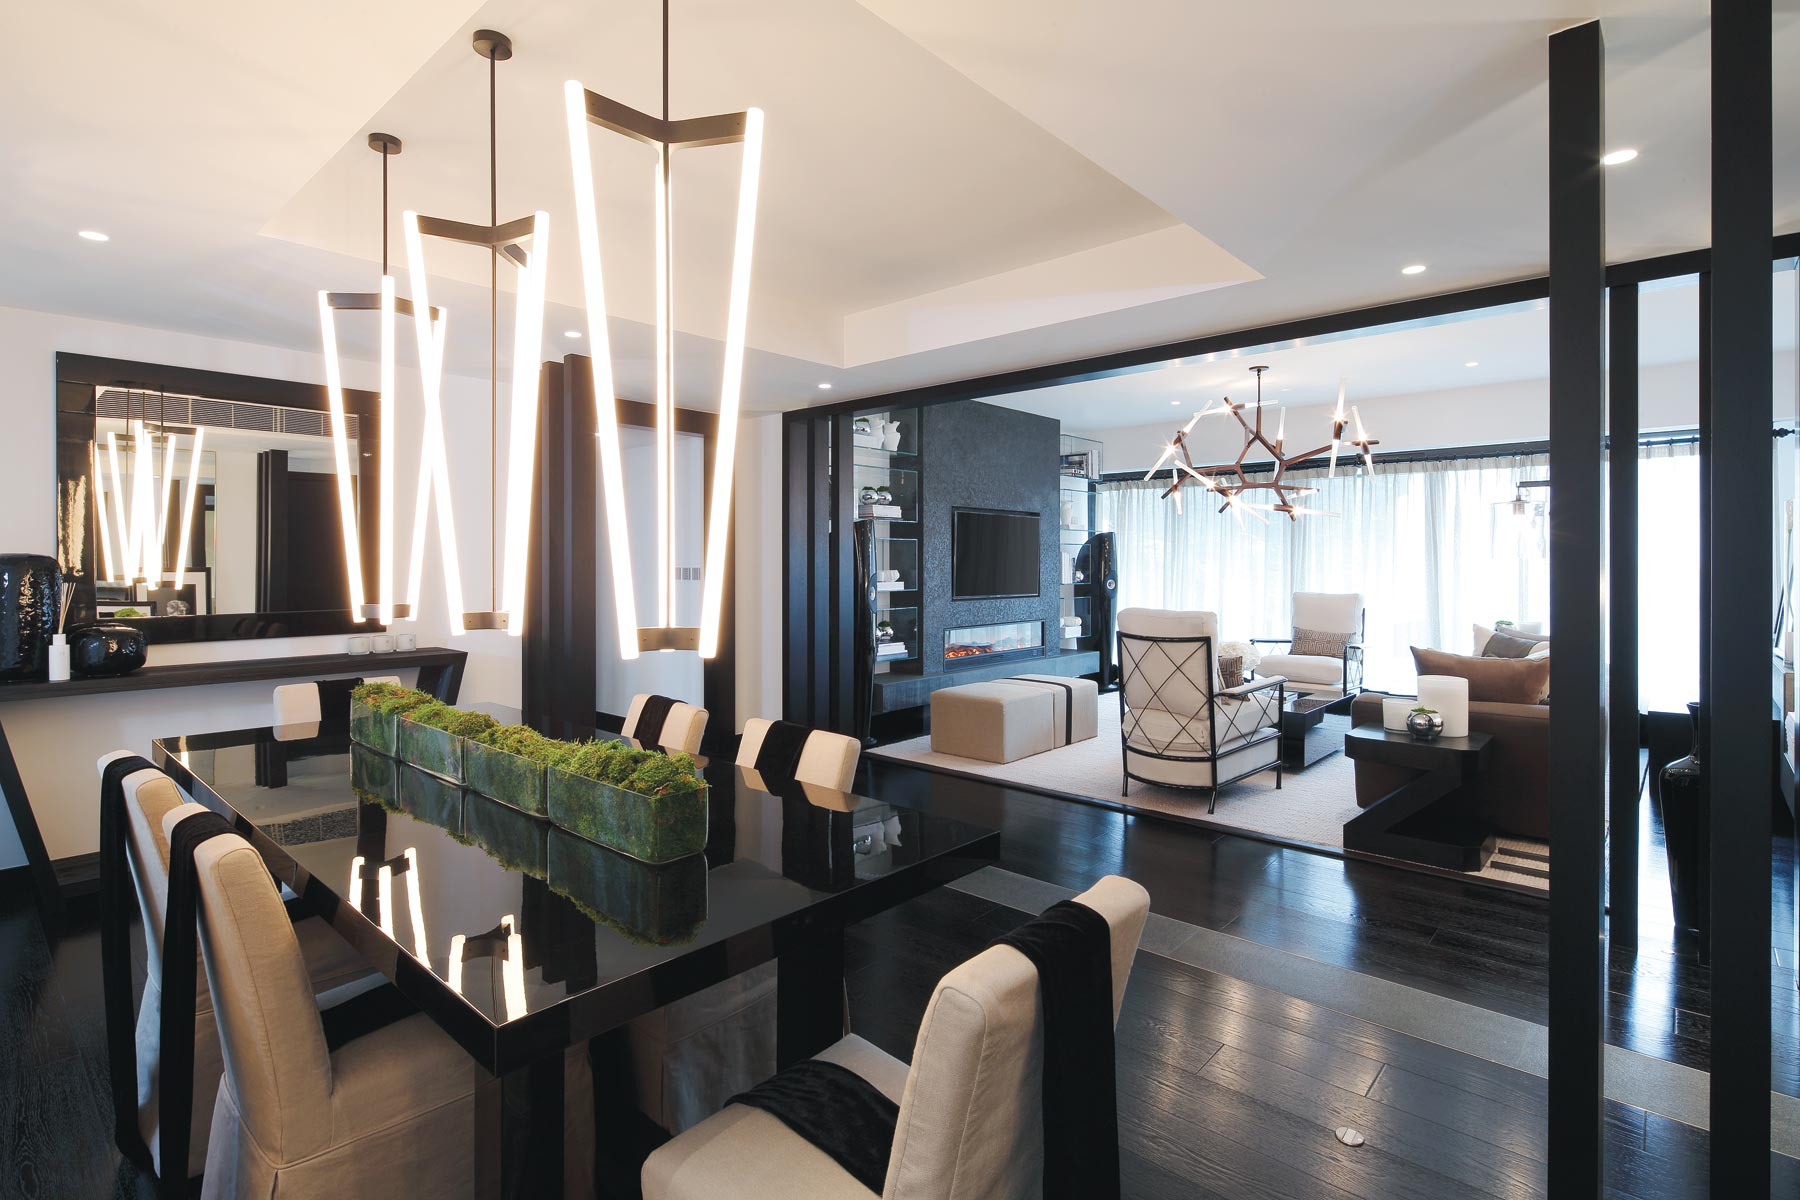 10 interior design projects by kelly hoppen you must see for Top 10 interior design blogs